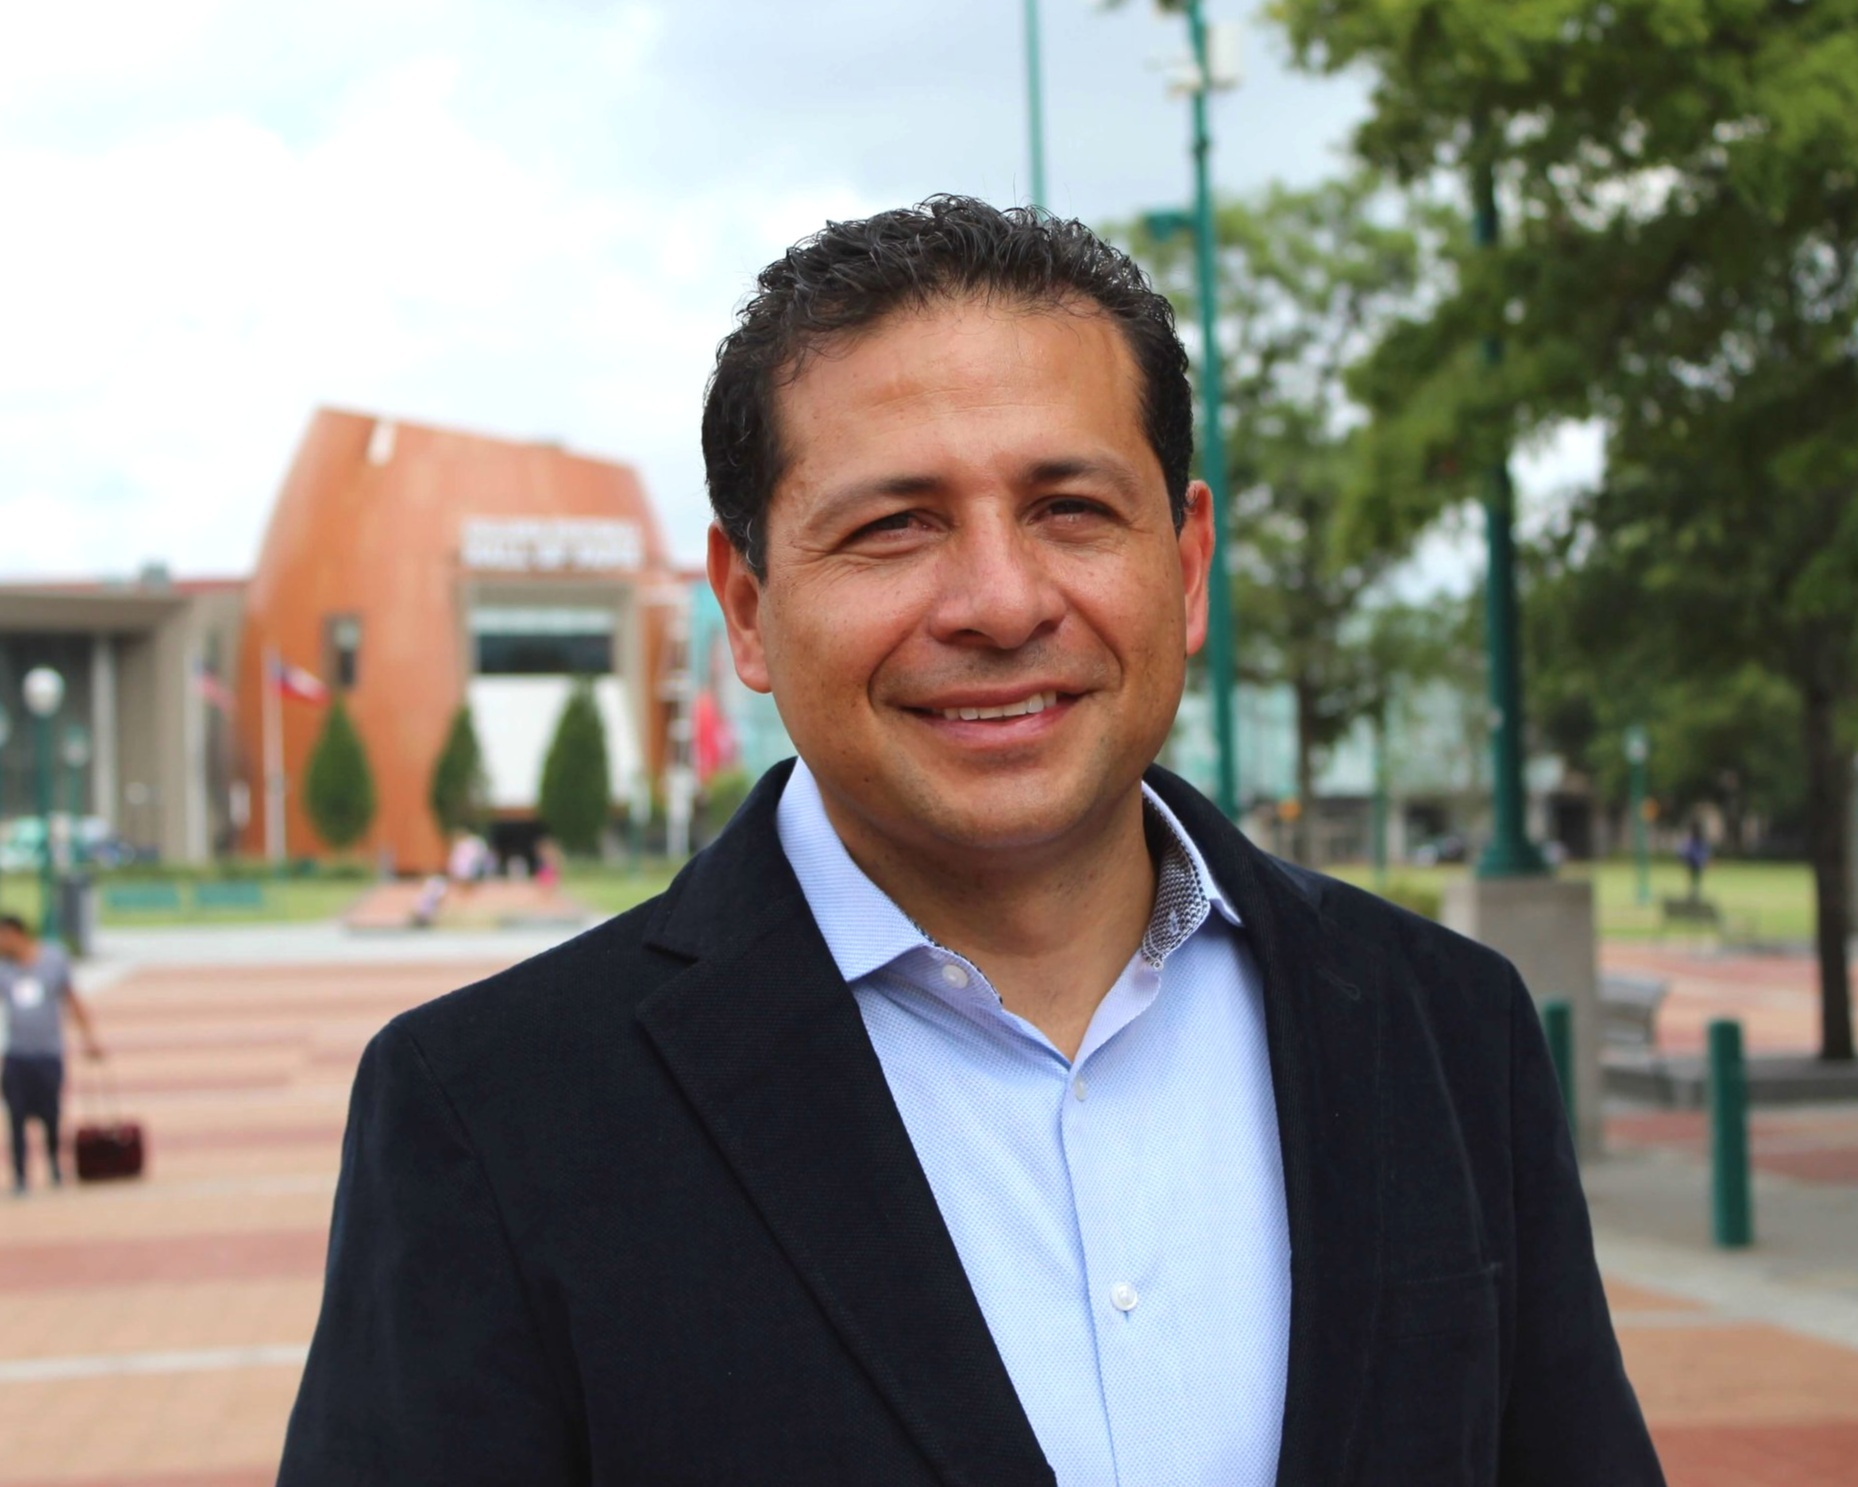 Javier Cristancho – Director of Program & Project Controls